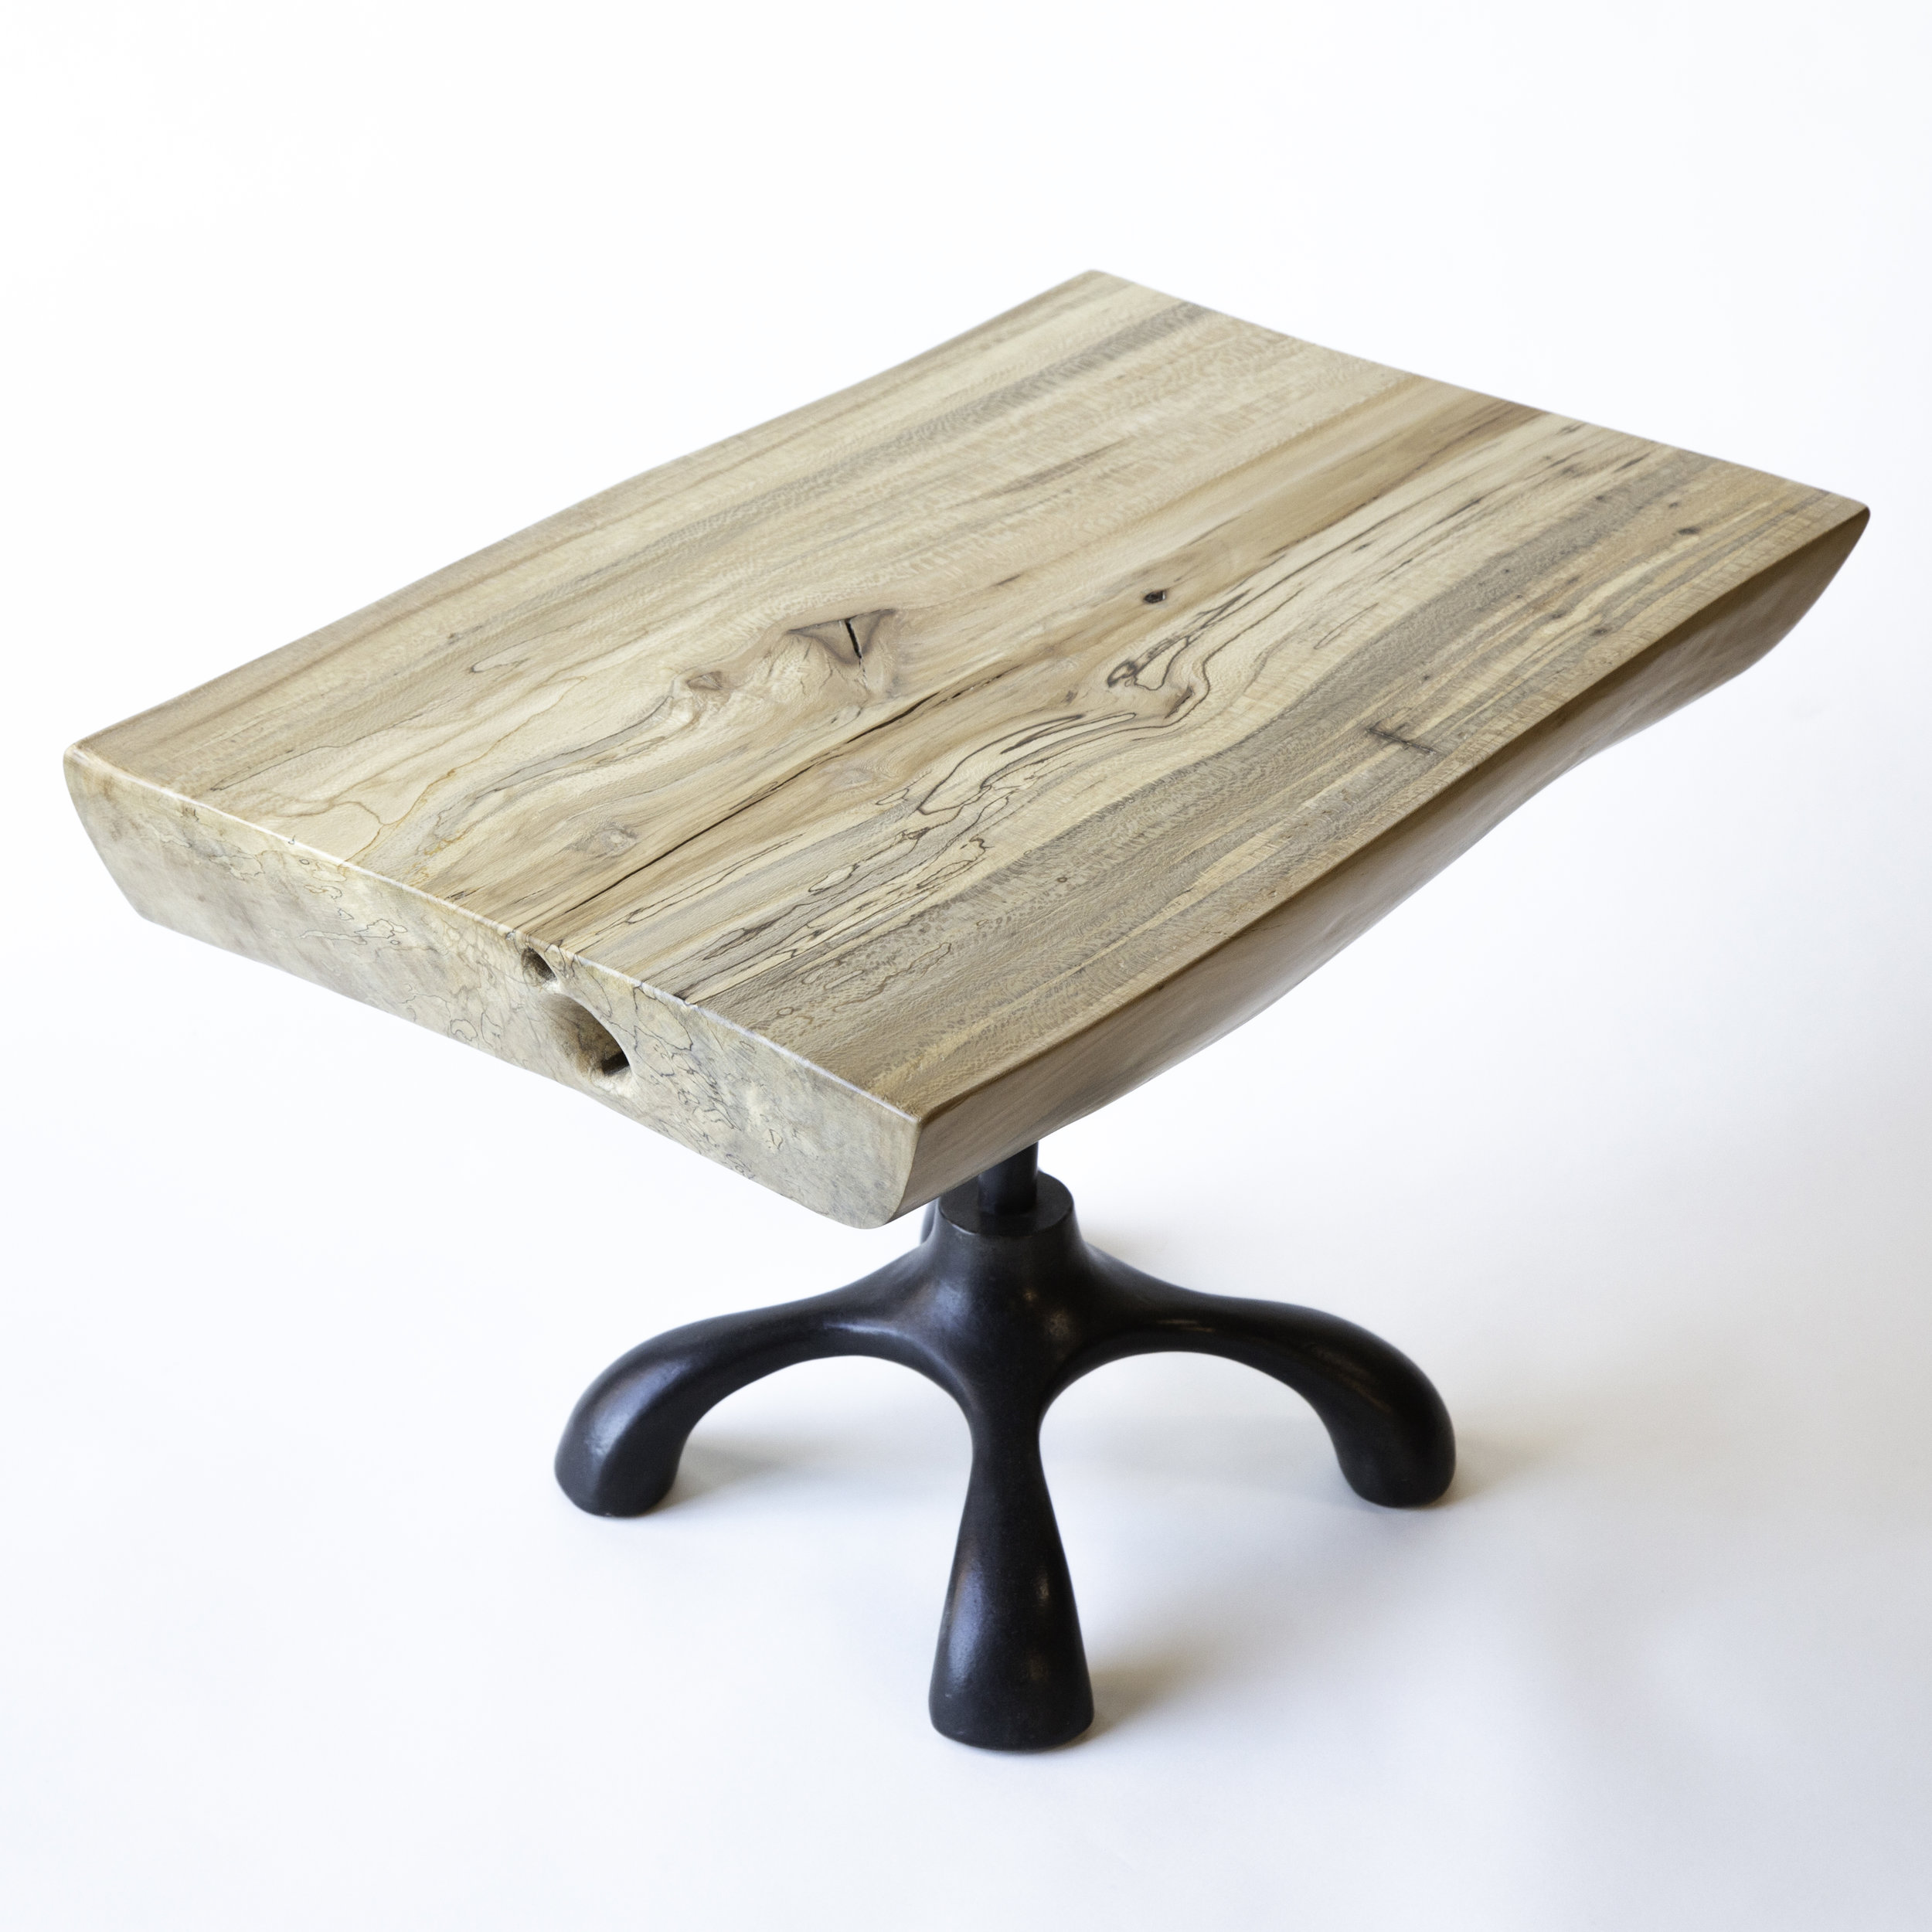 Chunk Sycamore Table 2.jpg